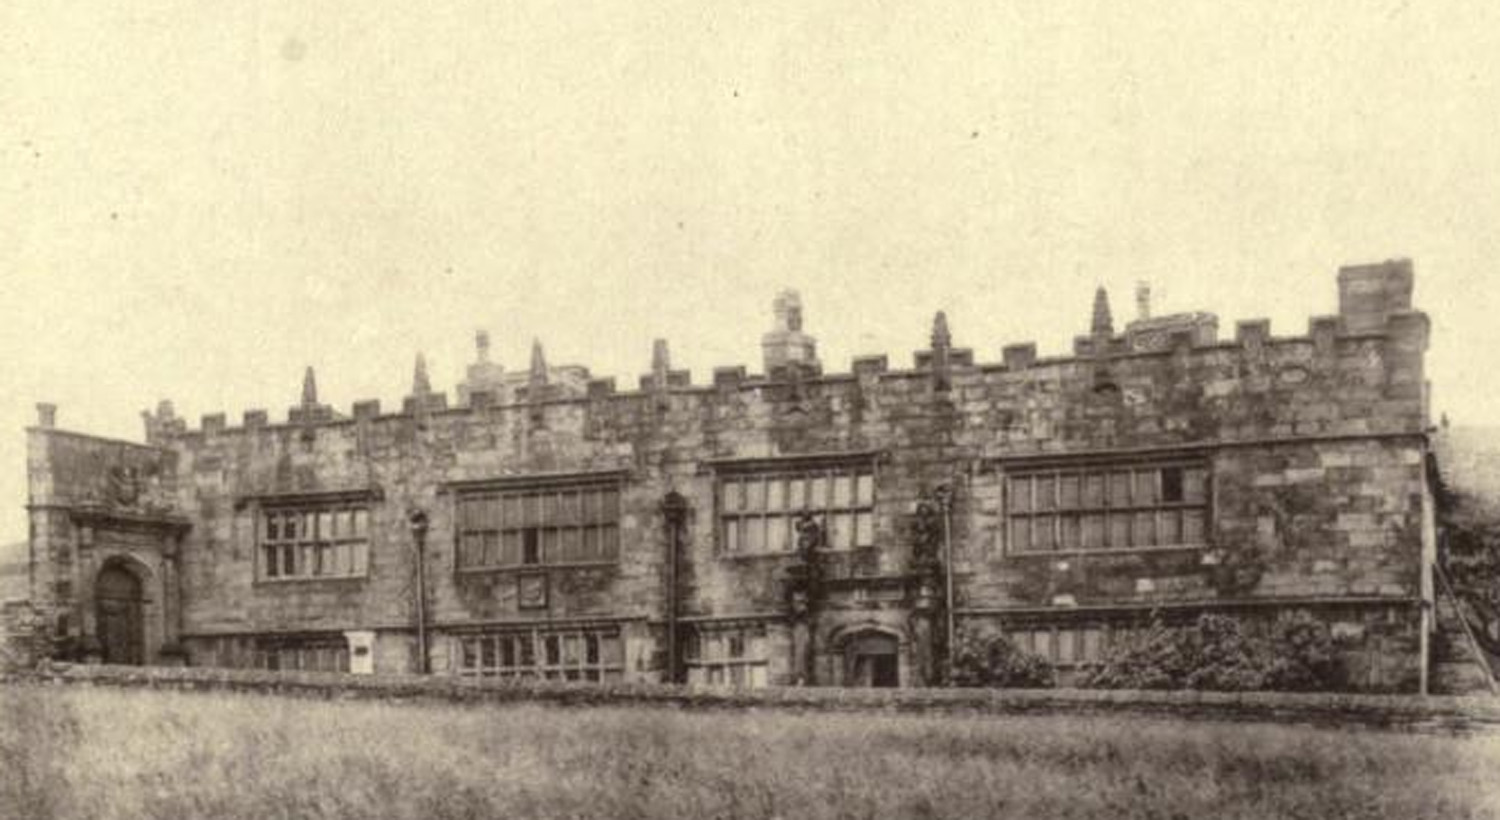 Https Commons Wikimedia Org Wiki File High Sunderland Hall 1913 Jpg